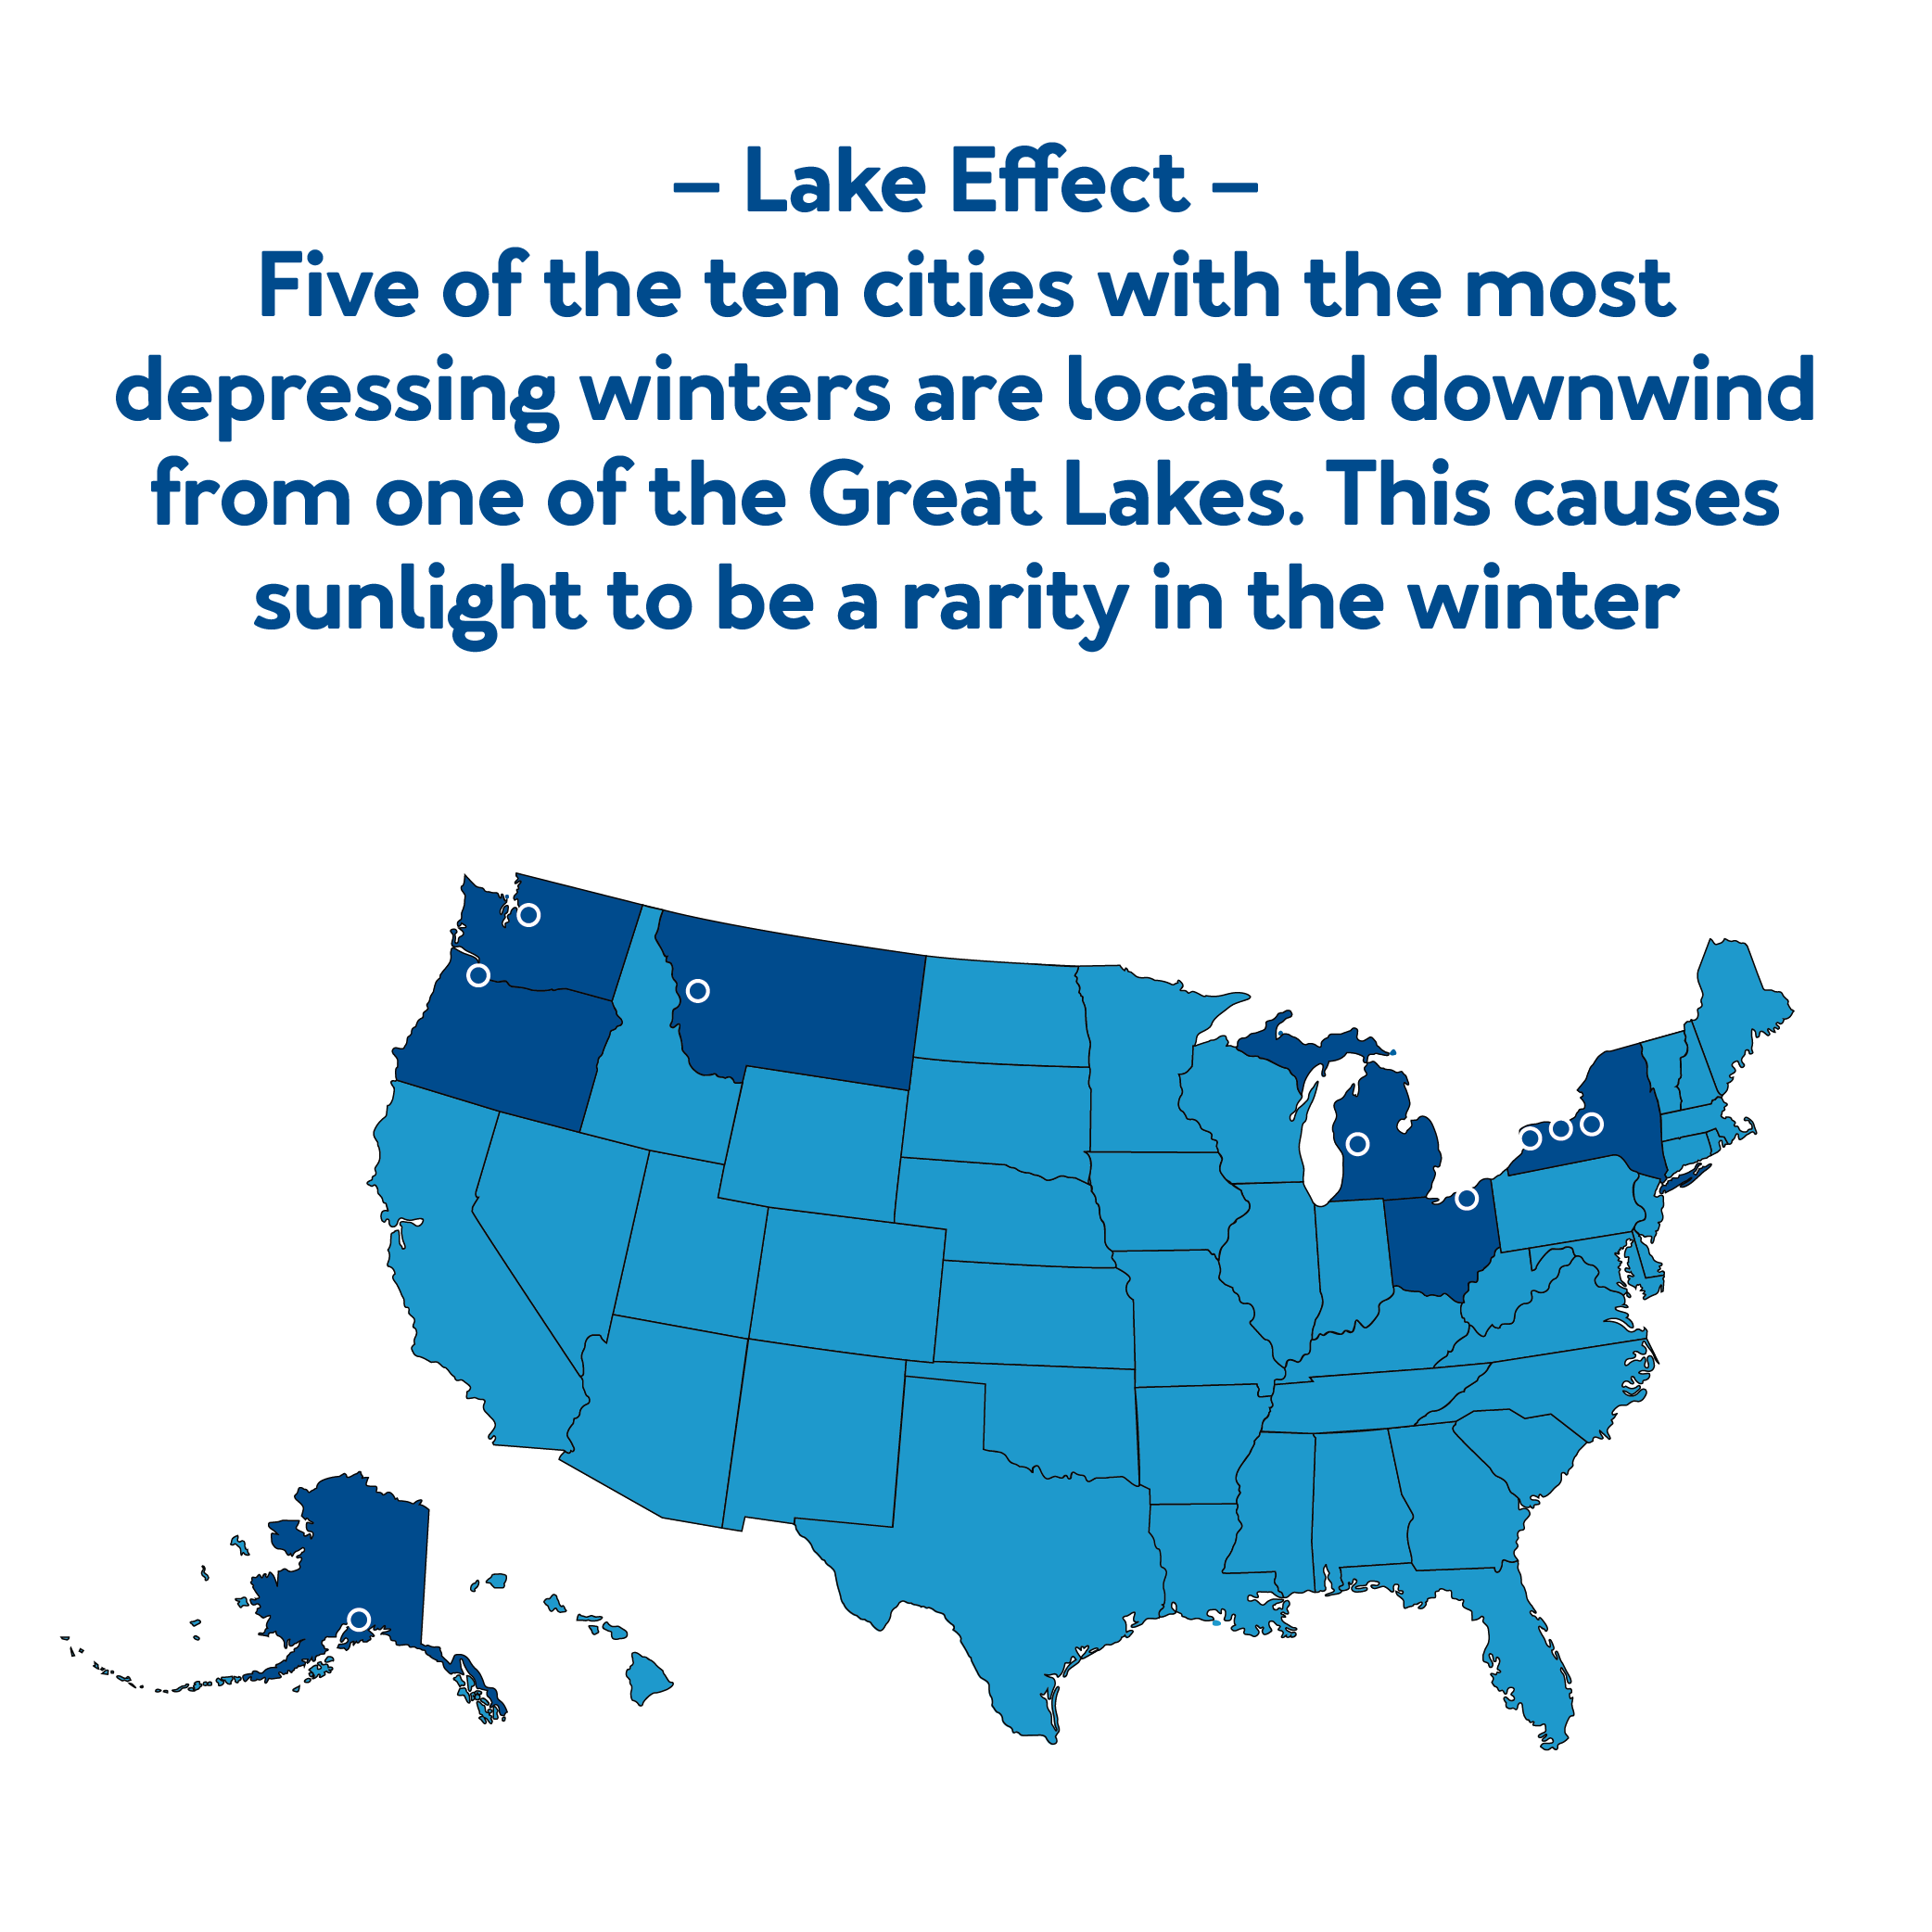 Five of the ten states with the most depressing winters are located downwind from one of the great lakes. This causes sunlight to be a rarity in the winter